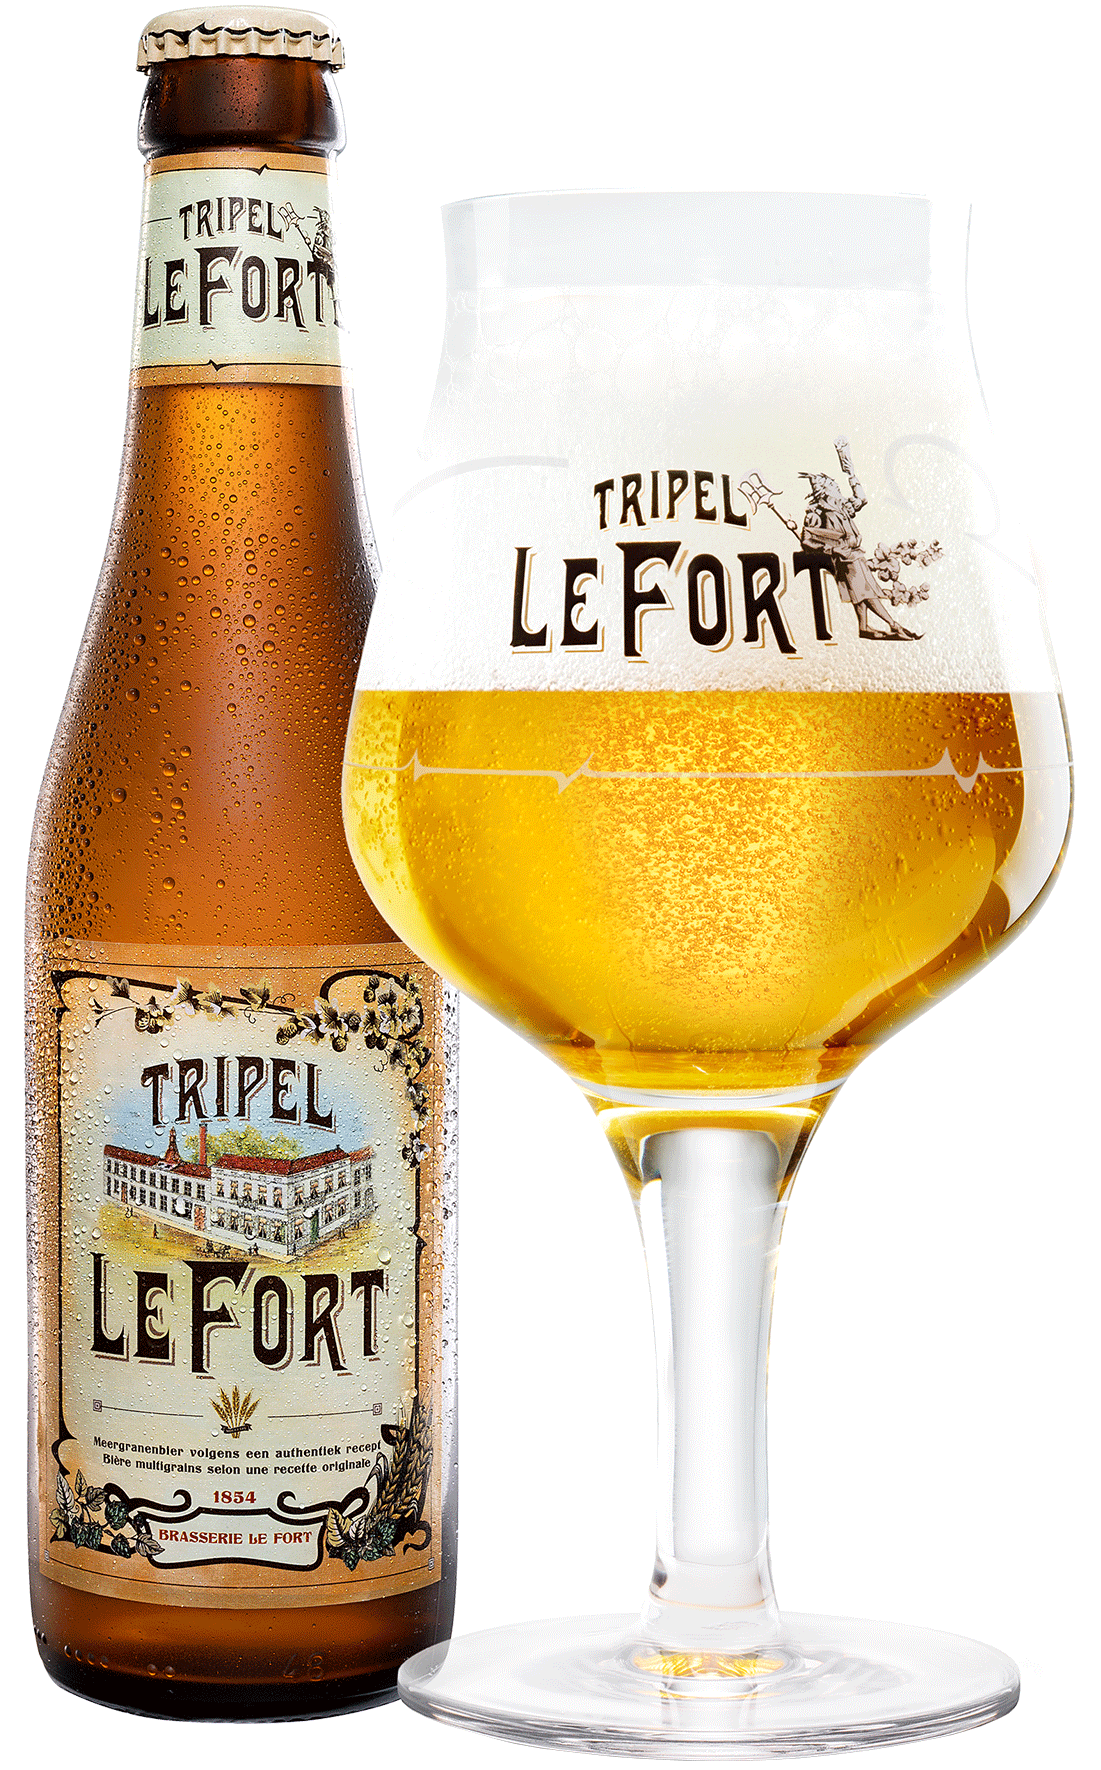 Le Fort Tripel Image